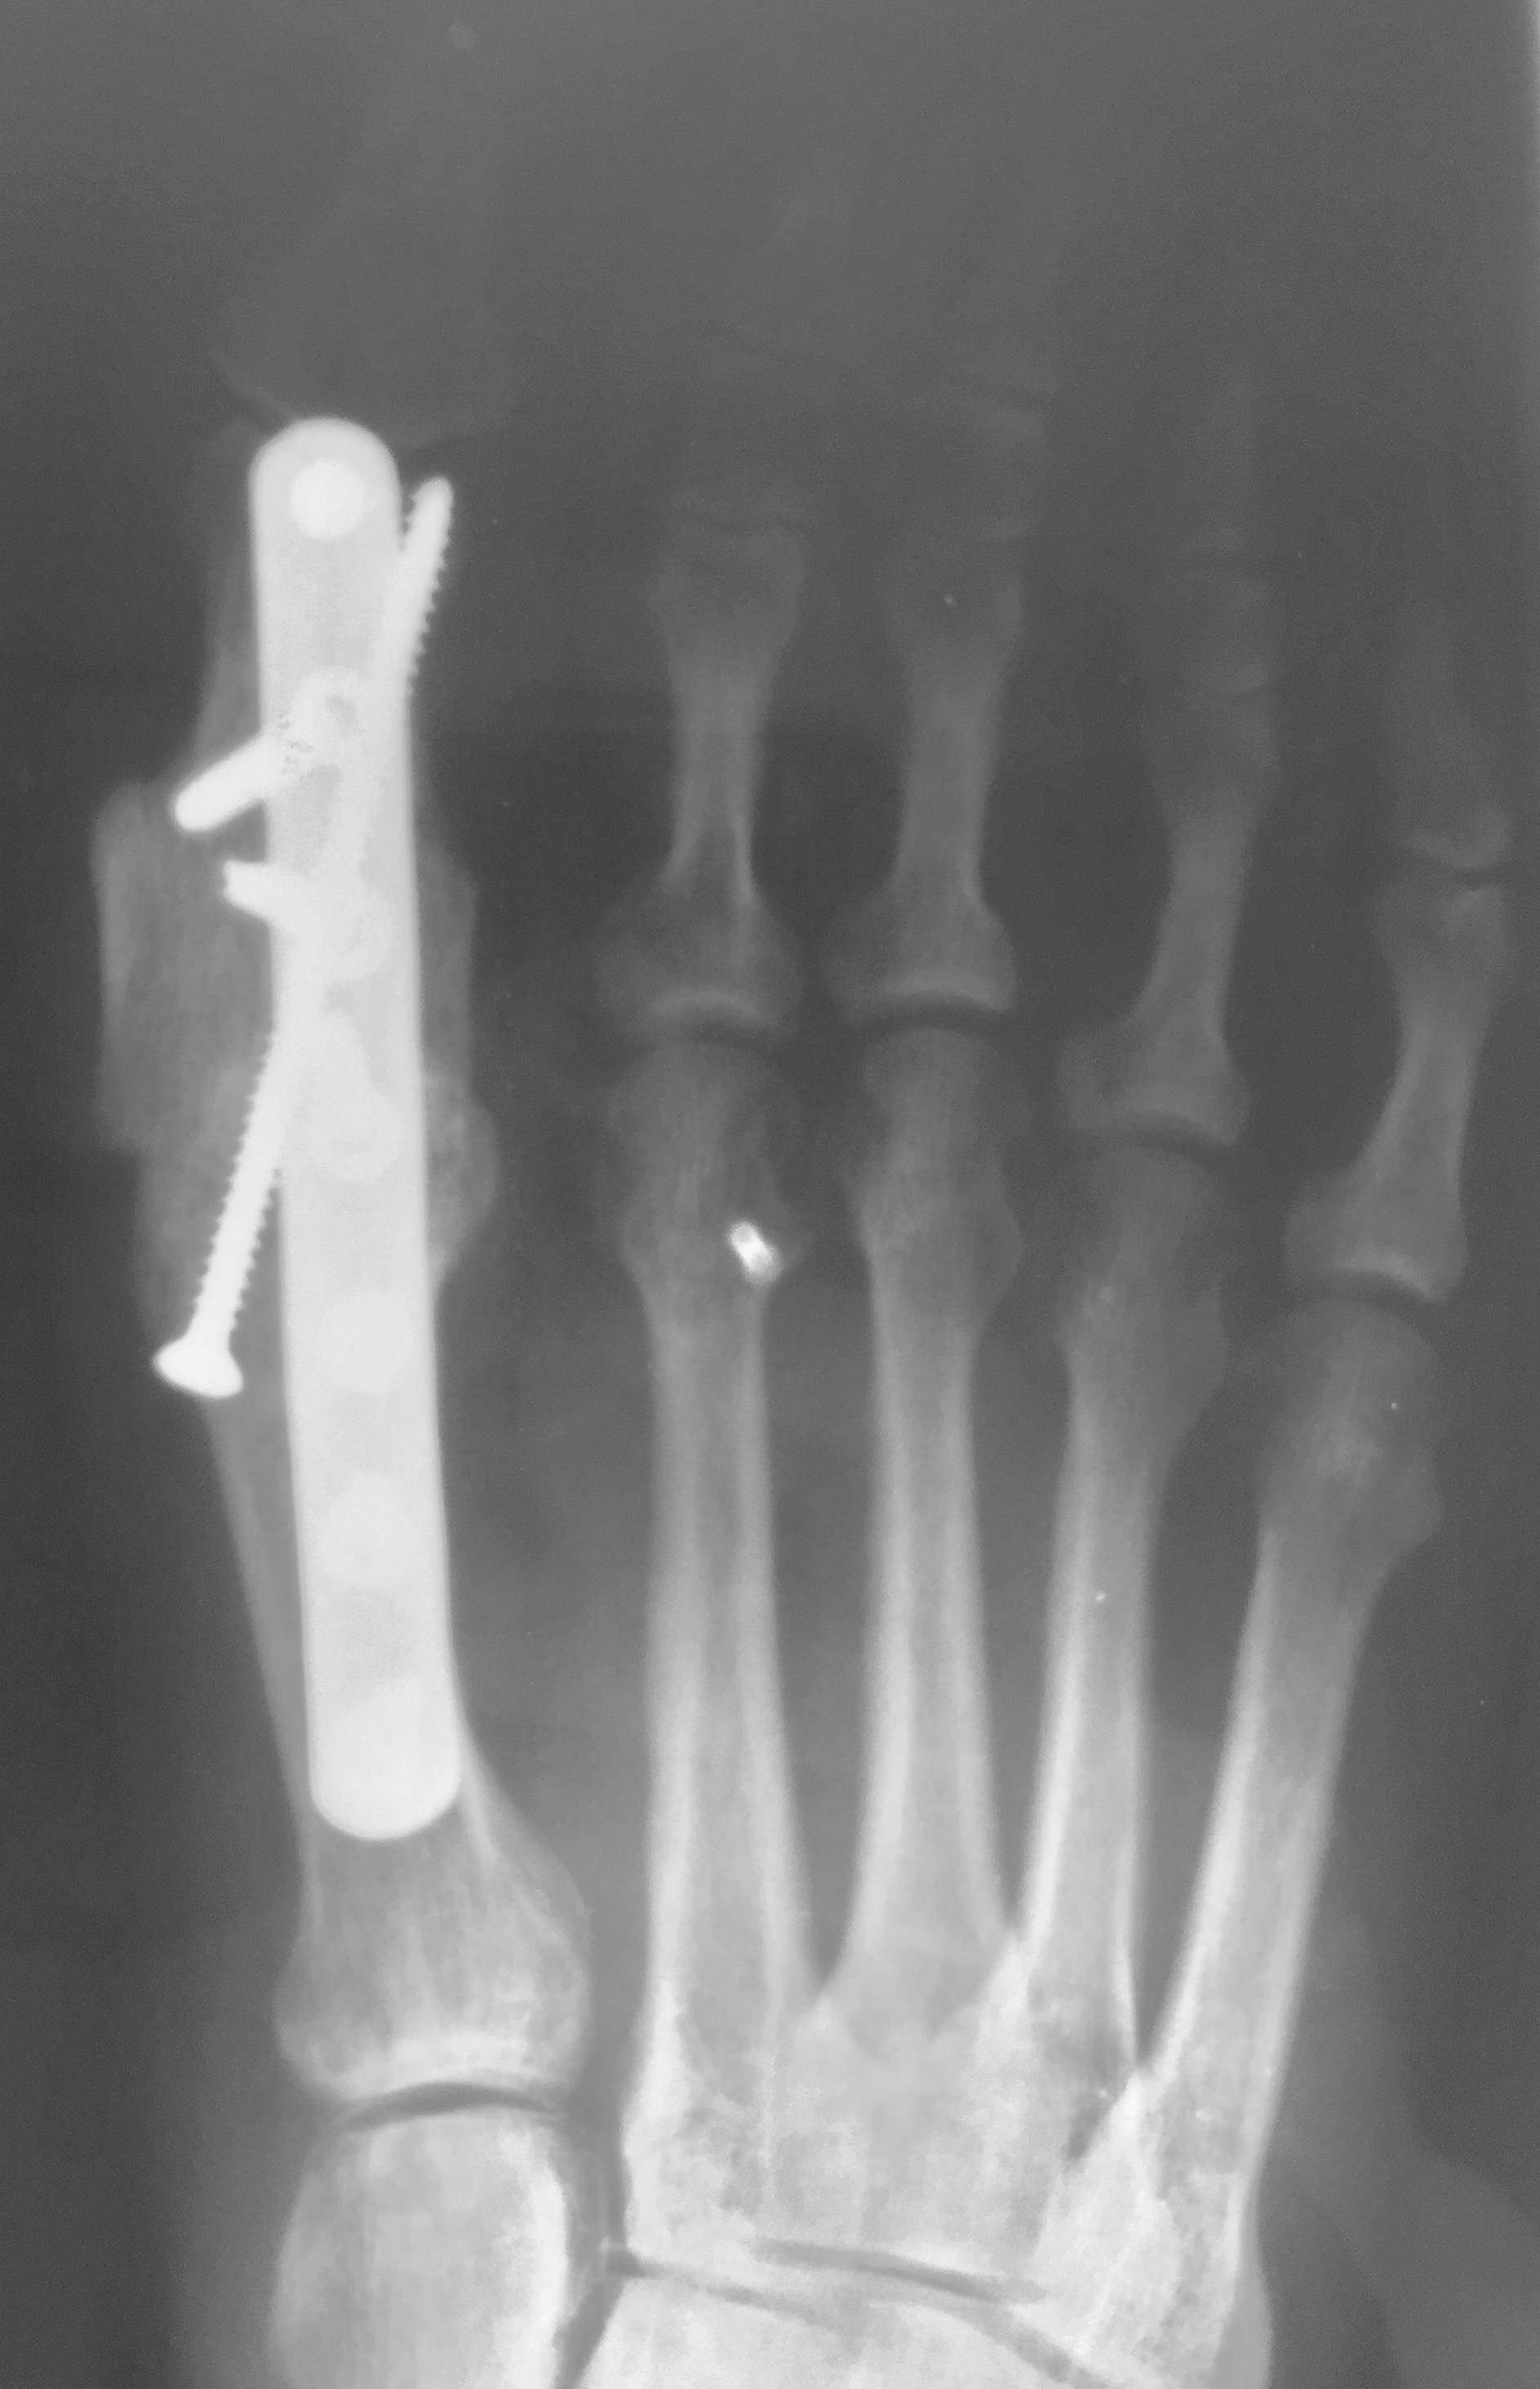 In this postoperative radiographic image, one can appreciate demonstration of good incorporation of the autogenous tricortical cancellous bone graft harvested from the calcaneus into the large void at the first MPJ.